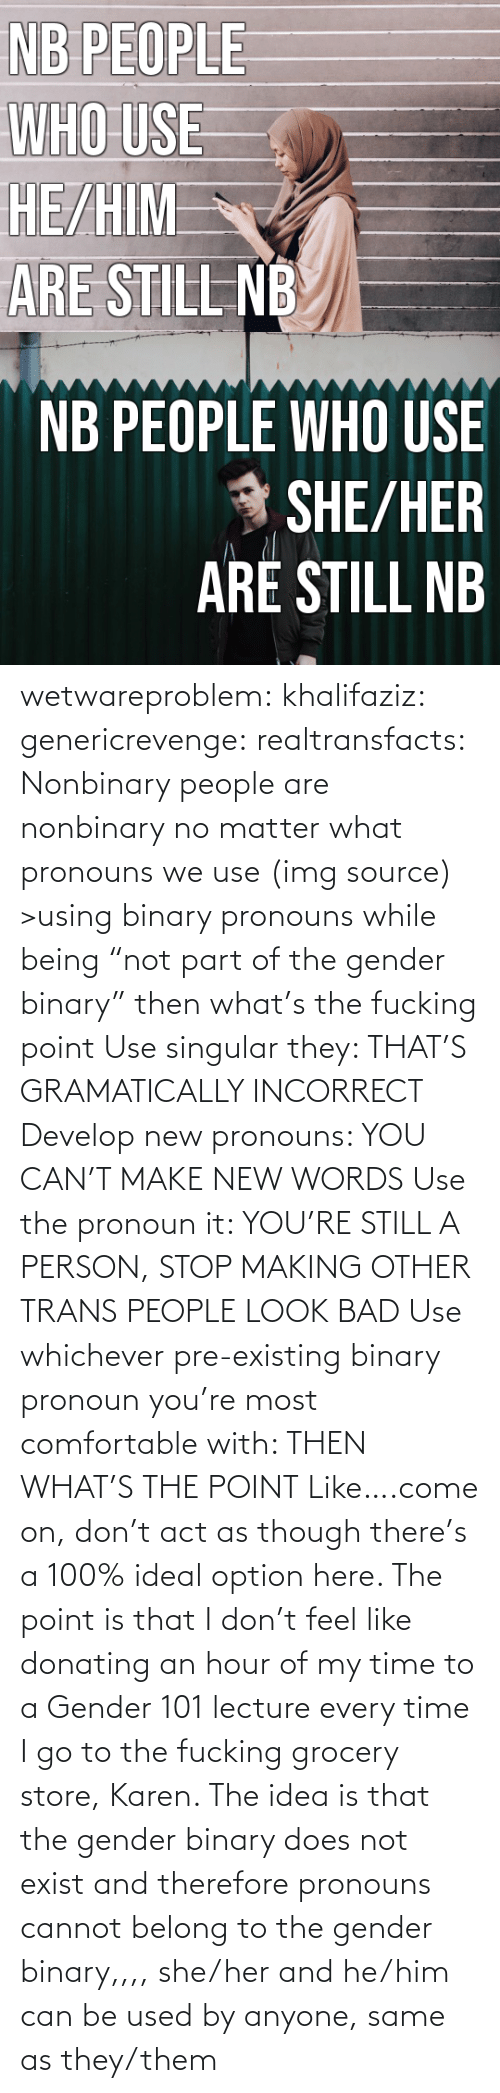 "Grocery: NB PEOPLE  WHO USE  HE/HIM  ARE STILL NB   NB PEOPLE WHO USE  * SHE/HER  ARÉ STILL NB wetwareproblem: khalifaziz:   genericrevenge:   realtransfacts: Nonbinary people are nonbinary no matter what pronouns we use (img source)   >using binary pronouns while being ""not part of the gender binary"" then what's the fucking point   Use singular they: THAT'S GRAMATICALLY INCORRECT Develop new pronouns: YOU CAN'T MAKE NEW WORDS Use the pronoun it: YOU'RE STILL A PERSON, STOP MAKING OTHER TRANS PEOPLE LOOK BAD Use whichever pre-existing binary pronoun you're most comfortable with: THEN WHAT'S THE POINT Like….come on, don't act as though there's a 100% ideal option here.    The point is that I don't feel like donating an hour of my time to a Gender 101 lecture every time I go to the fucking grocery store, Karen.     The idea is that the gender binary does not exist and therefore pronouns cannot belong to the gender binary,,,, she/her and he/him can be used by anyone, same as they/them"